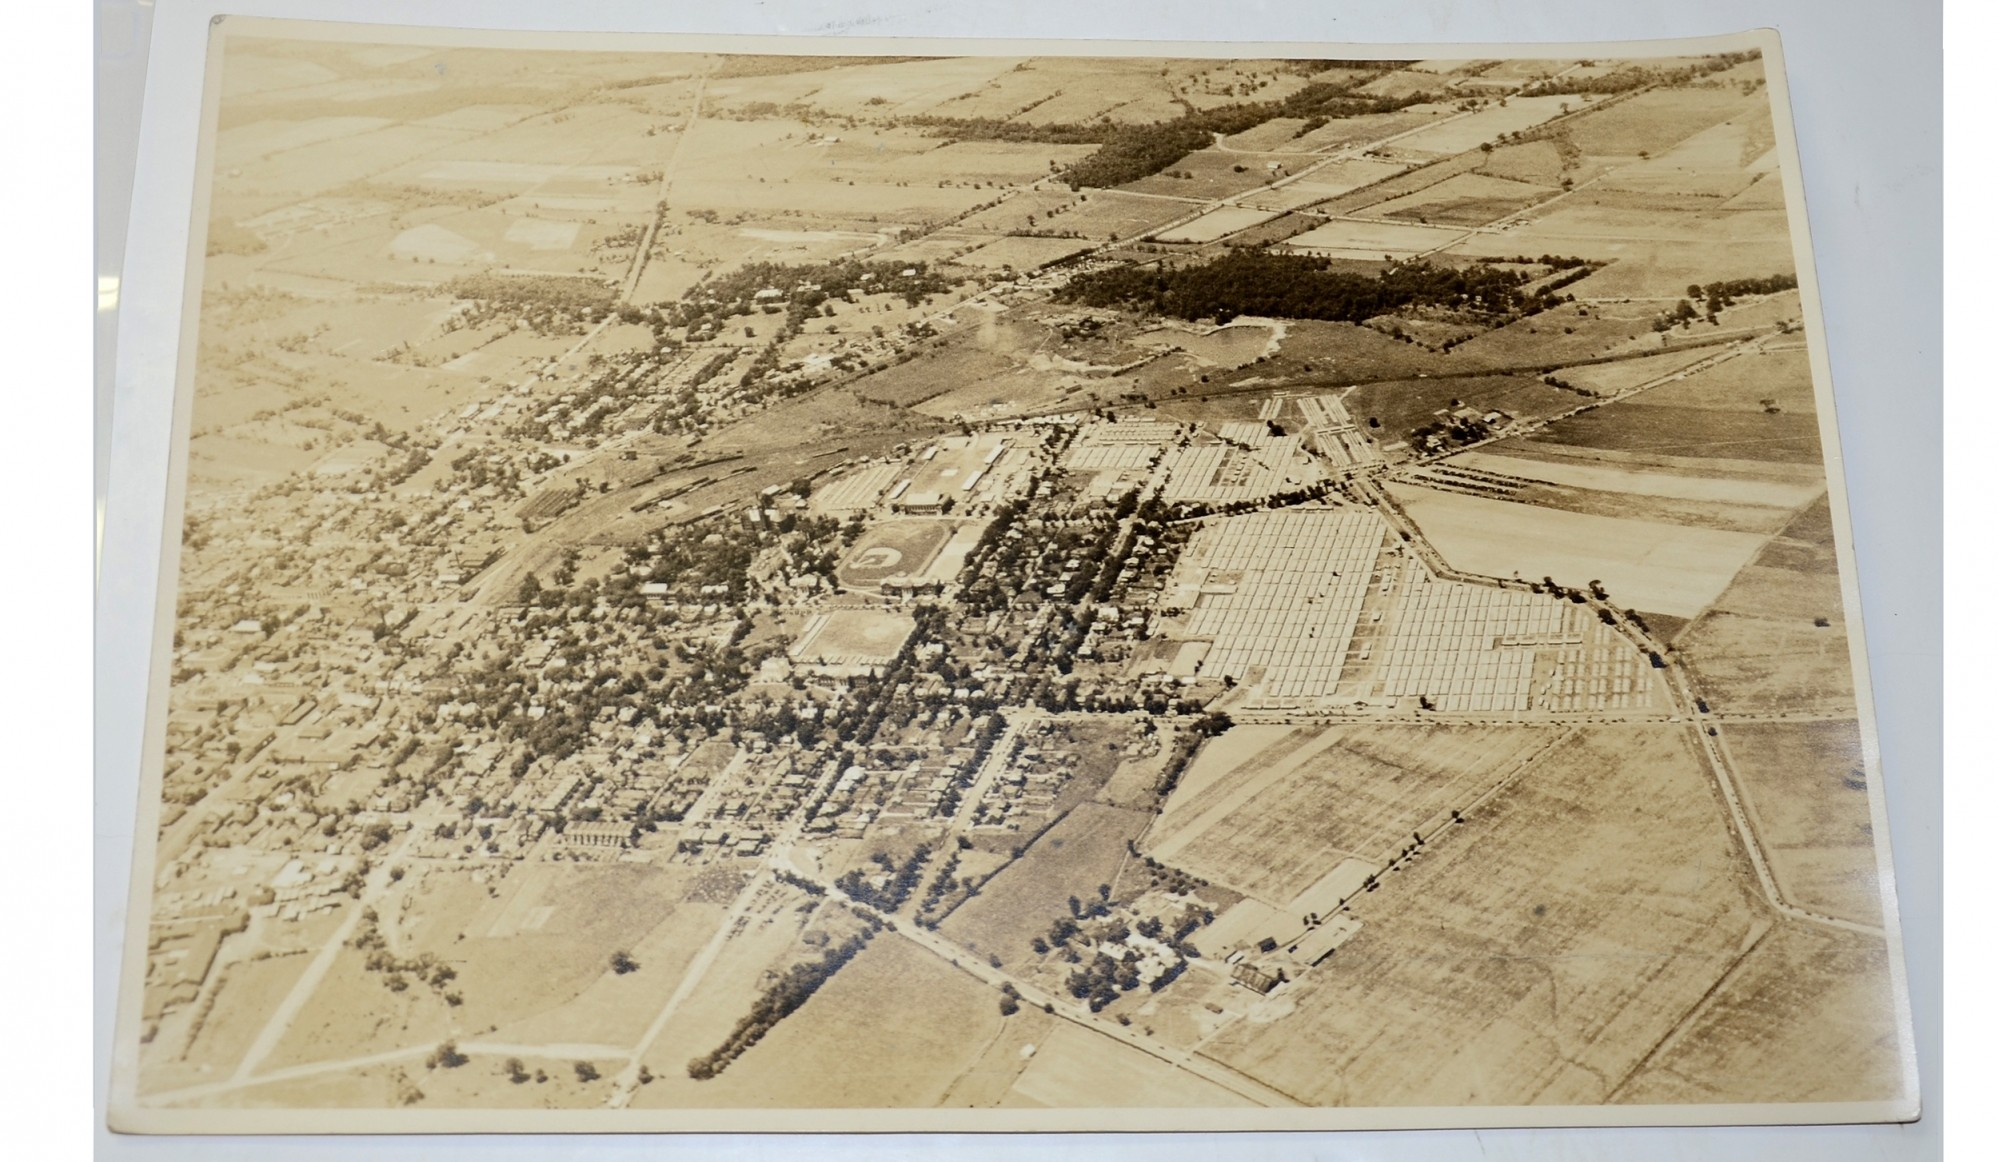 AERIAL PHOTO OF THE GETTYSBURG TAKEN ON JULY 4, 1938 DURING THE DEDICATION OF THE PEACE LIGHT MEMORIAL